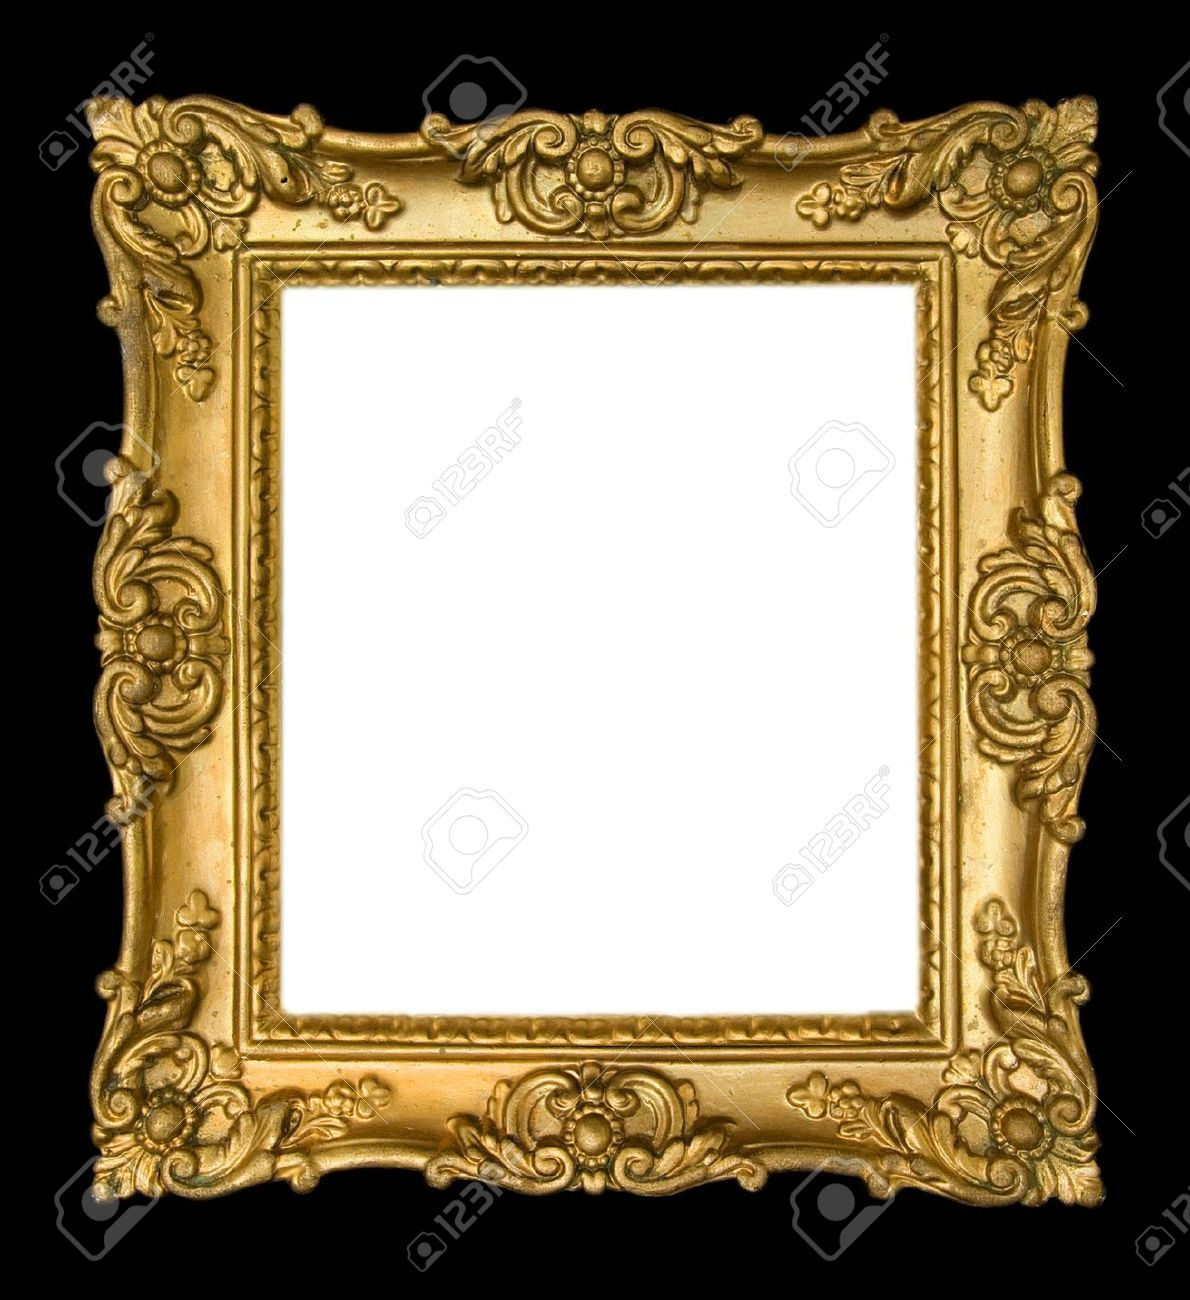 Ornate Frame Google Search Beauty And The Beast Themed Room